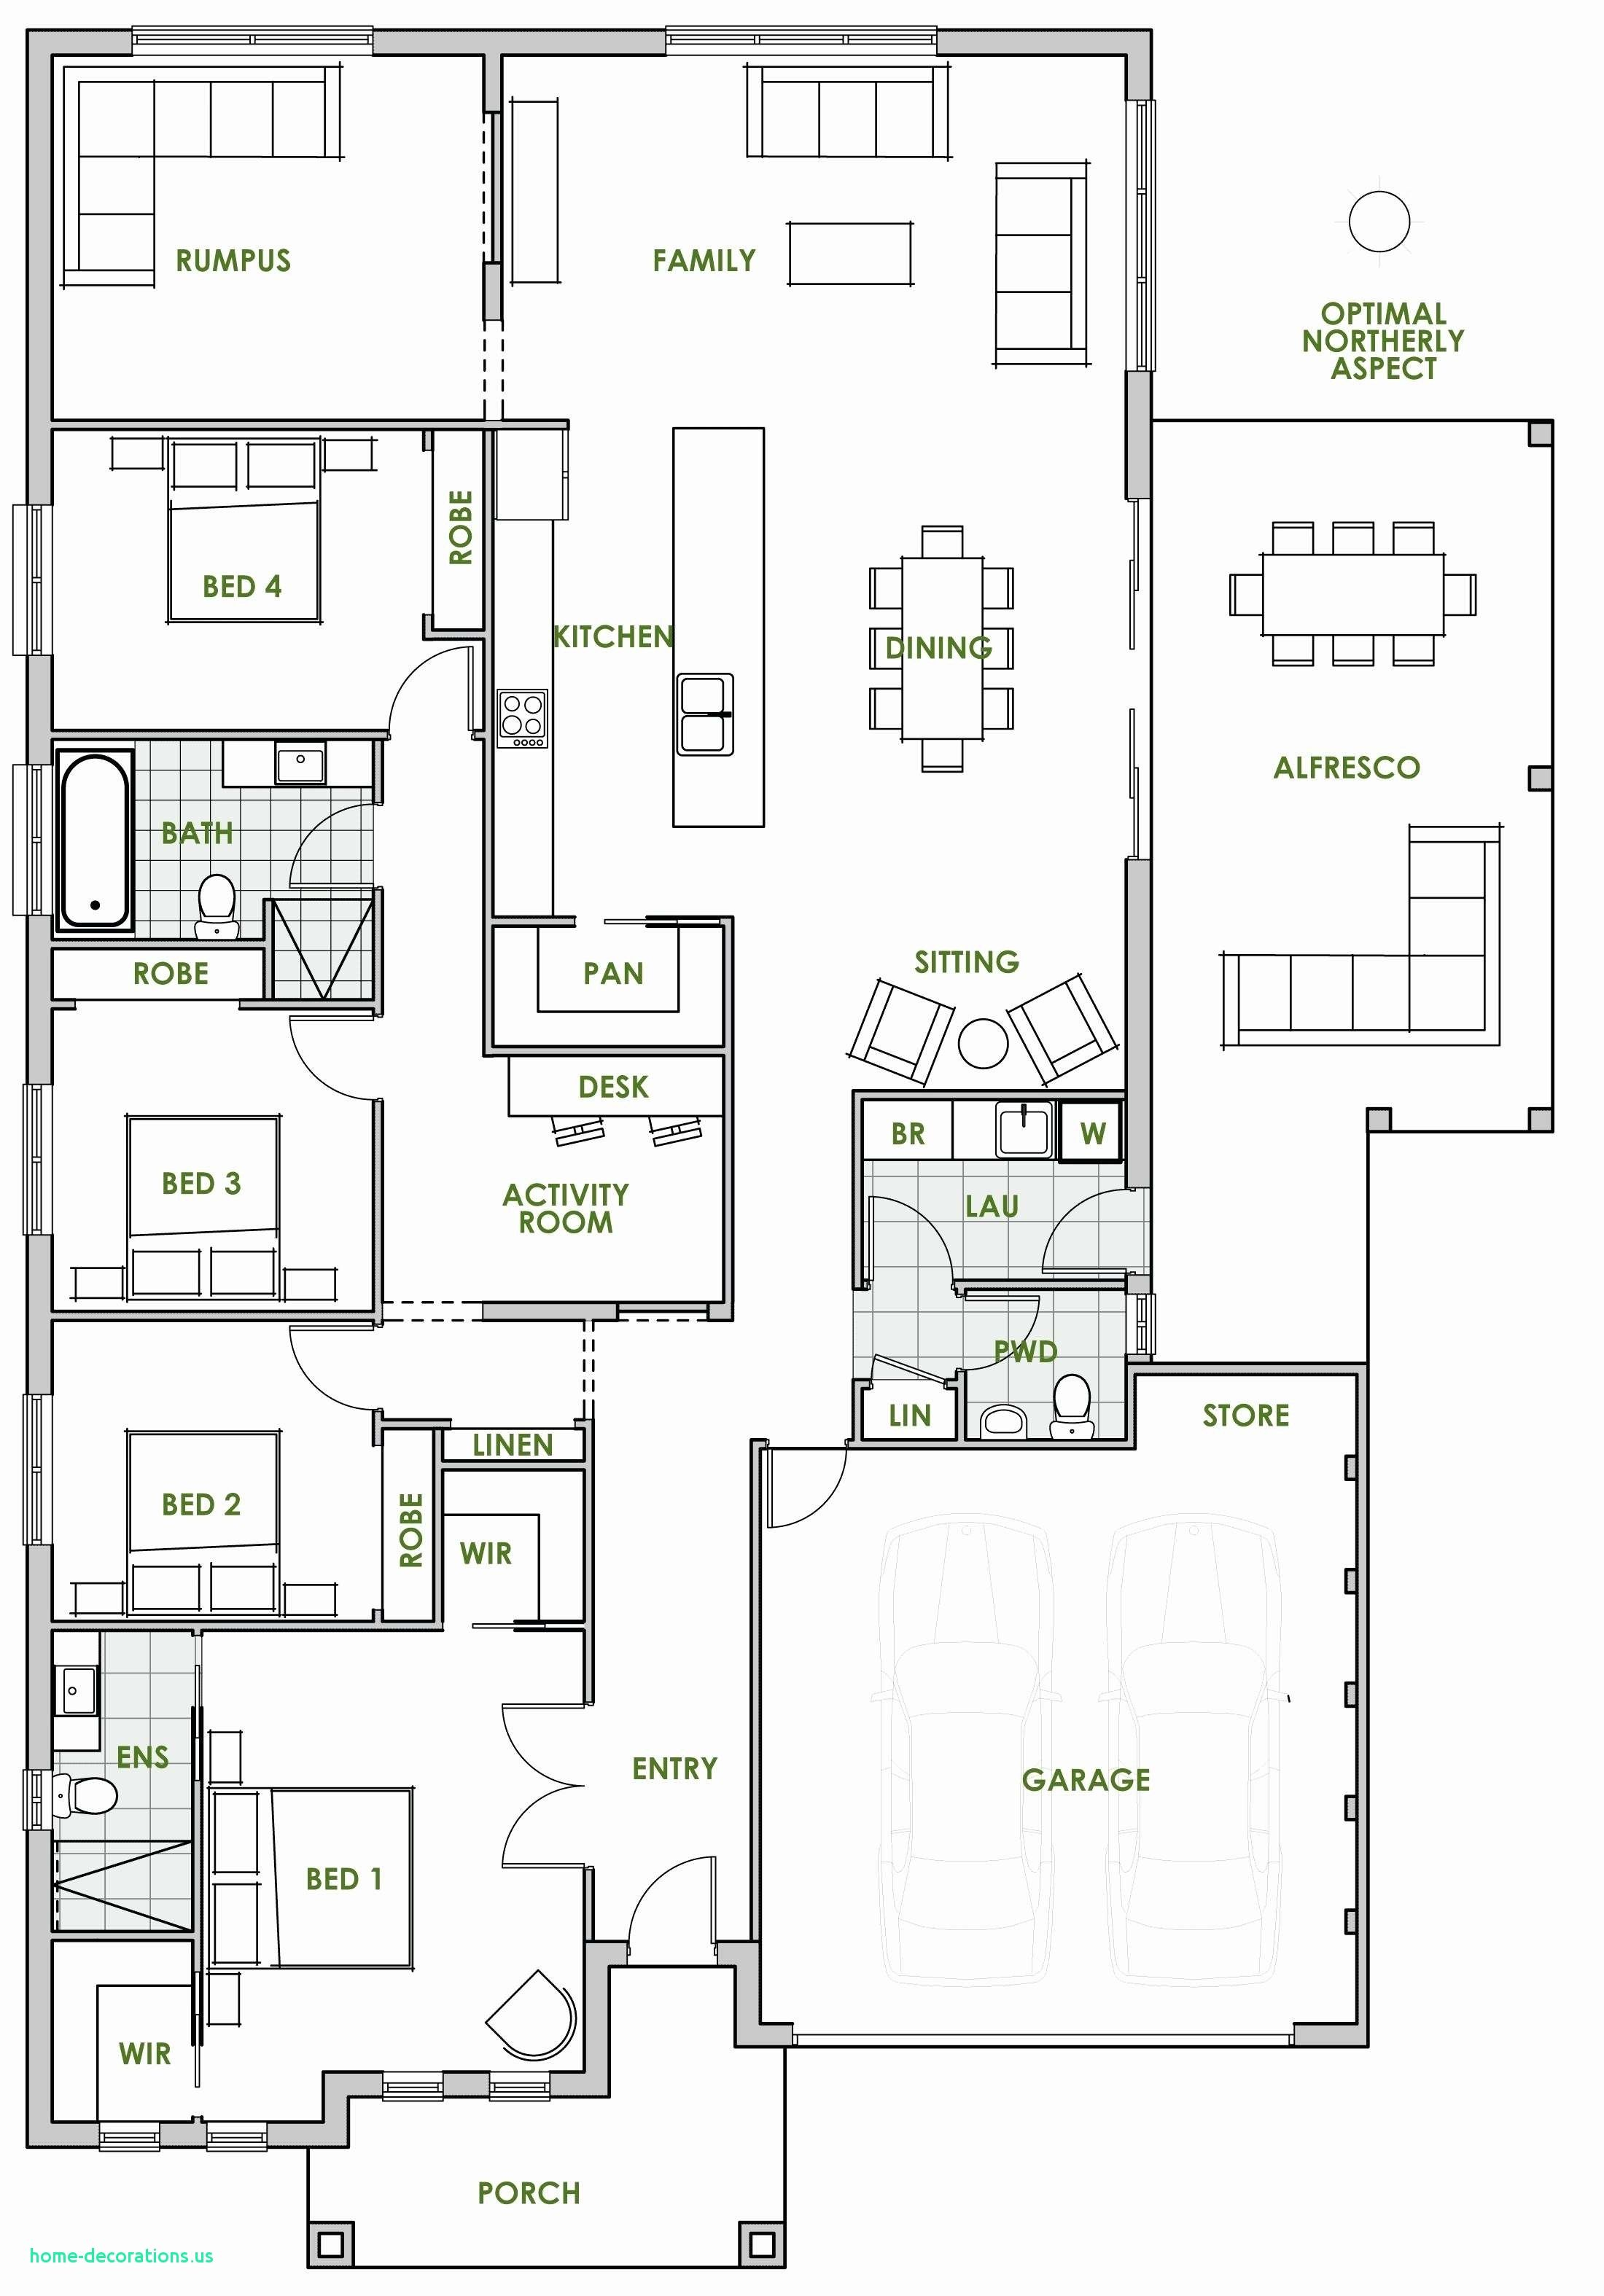 Inspirational Build Your Own House Plans For Free Floor Plan Design House Plans Australia Solar House Plans